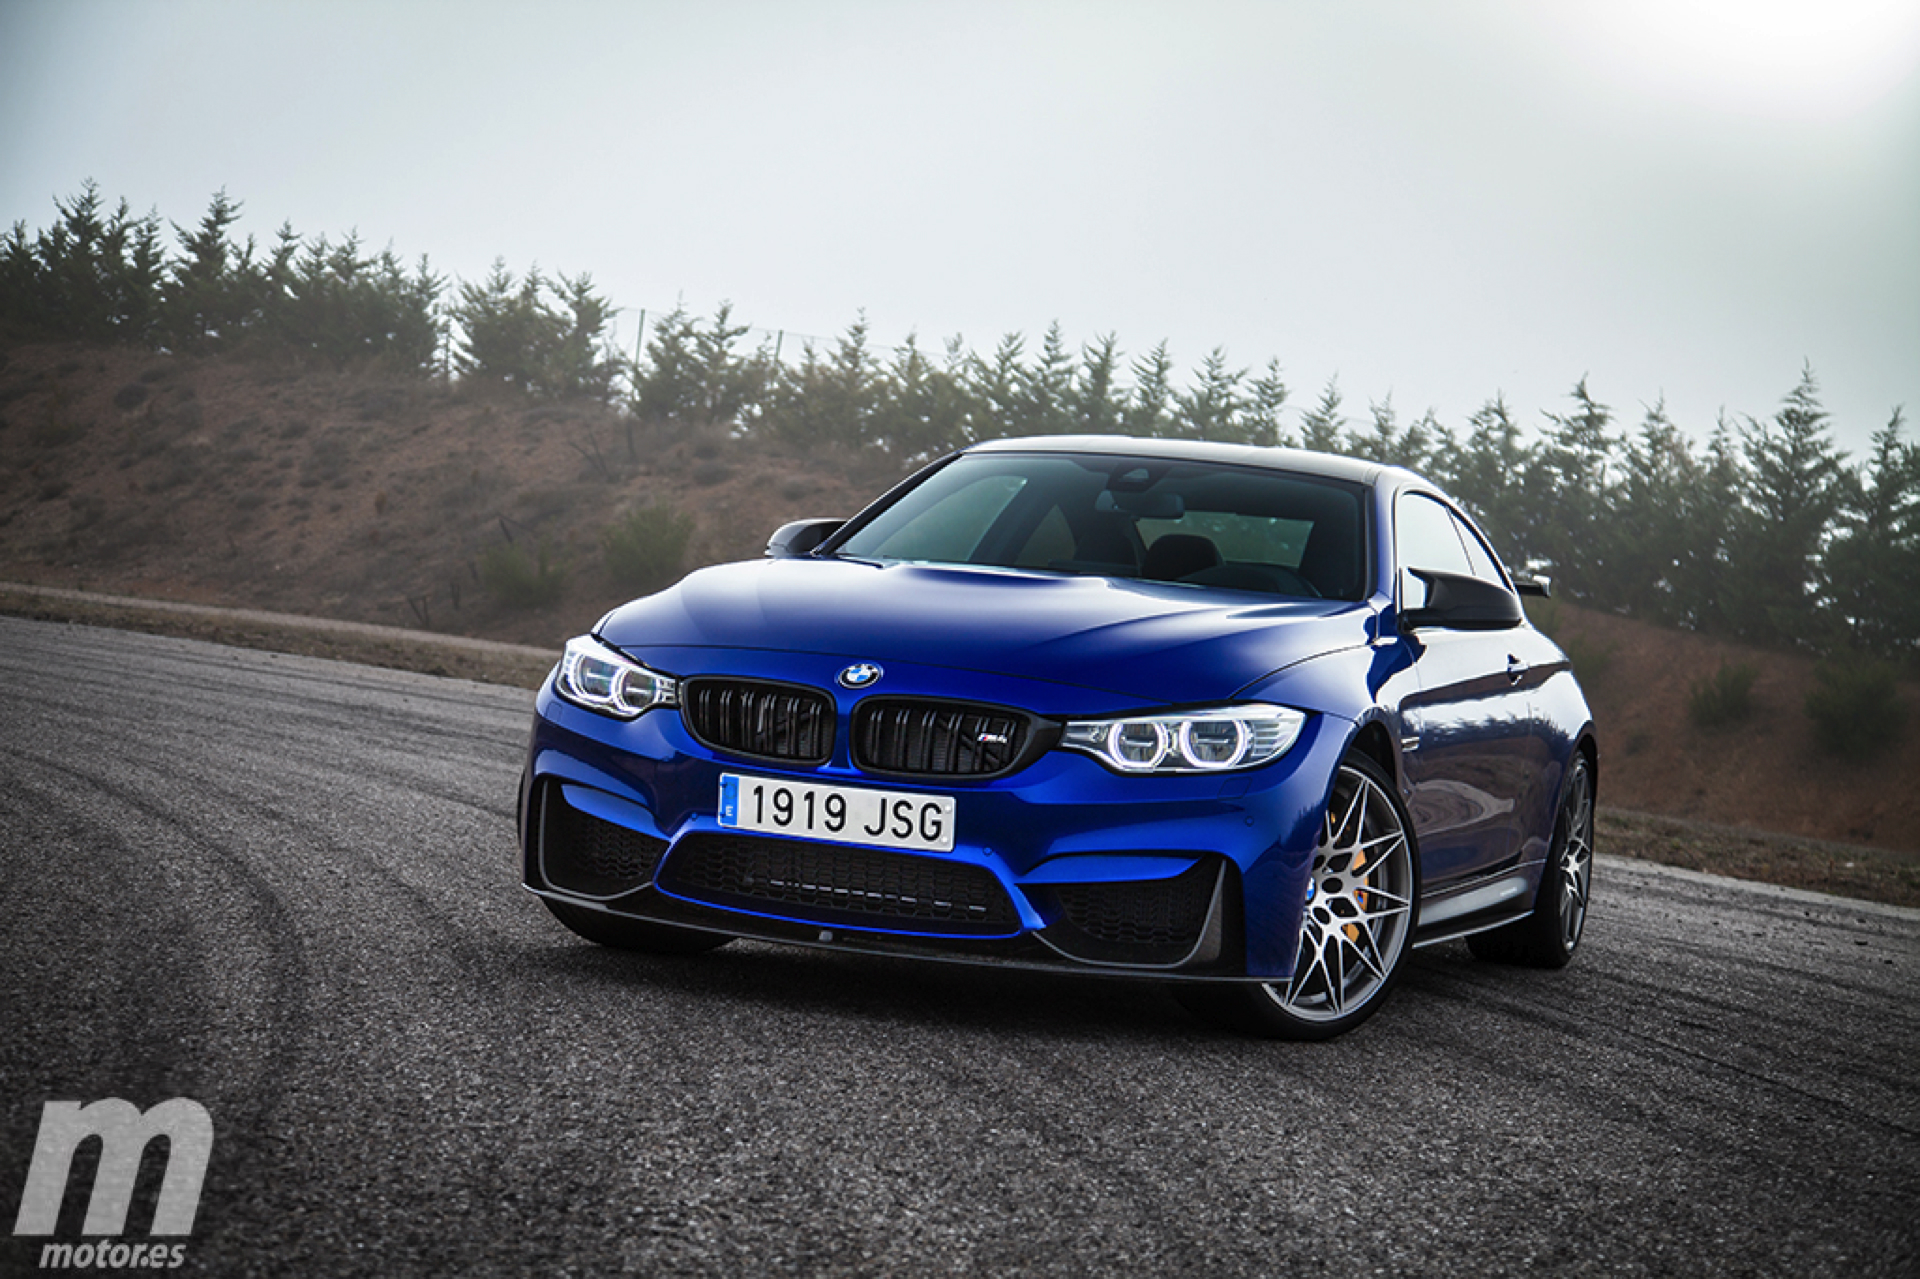 Bmw Dealers In Md >> Bmw M3 Pics | All New Car Release And Reviews